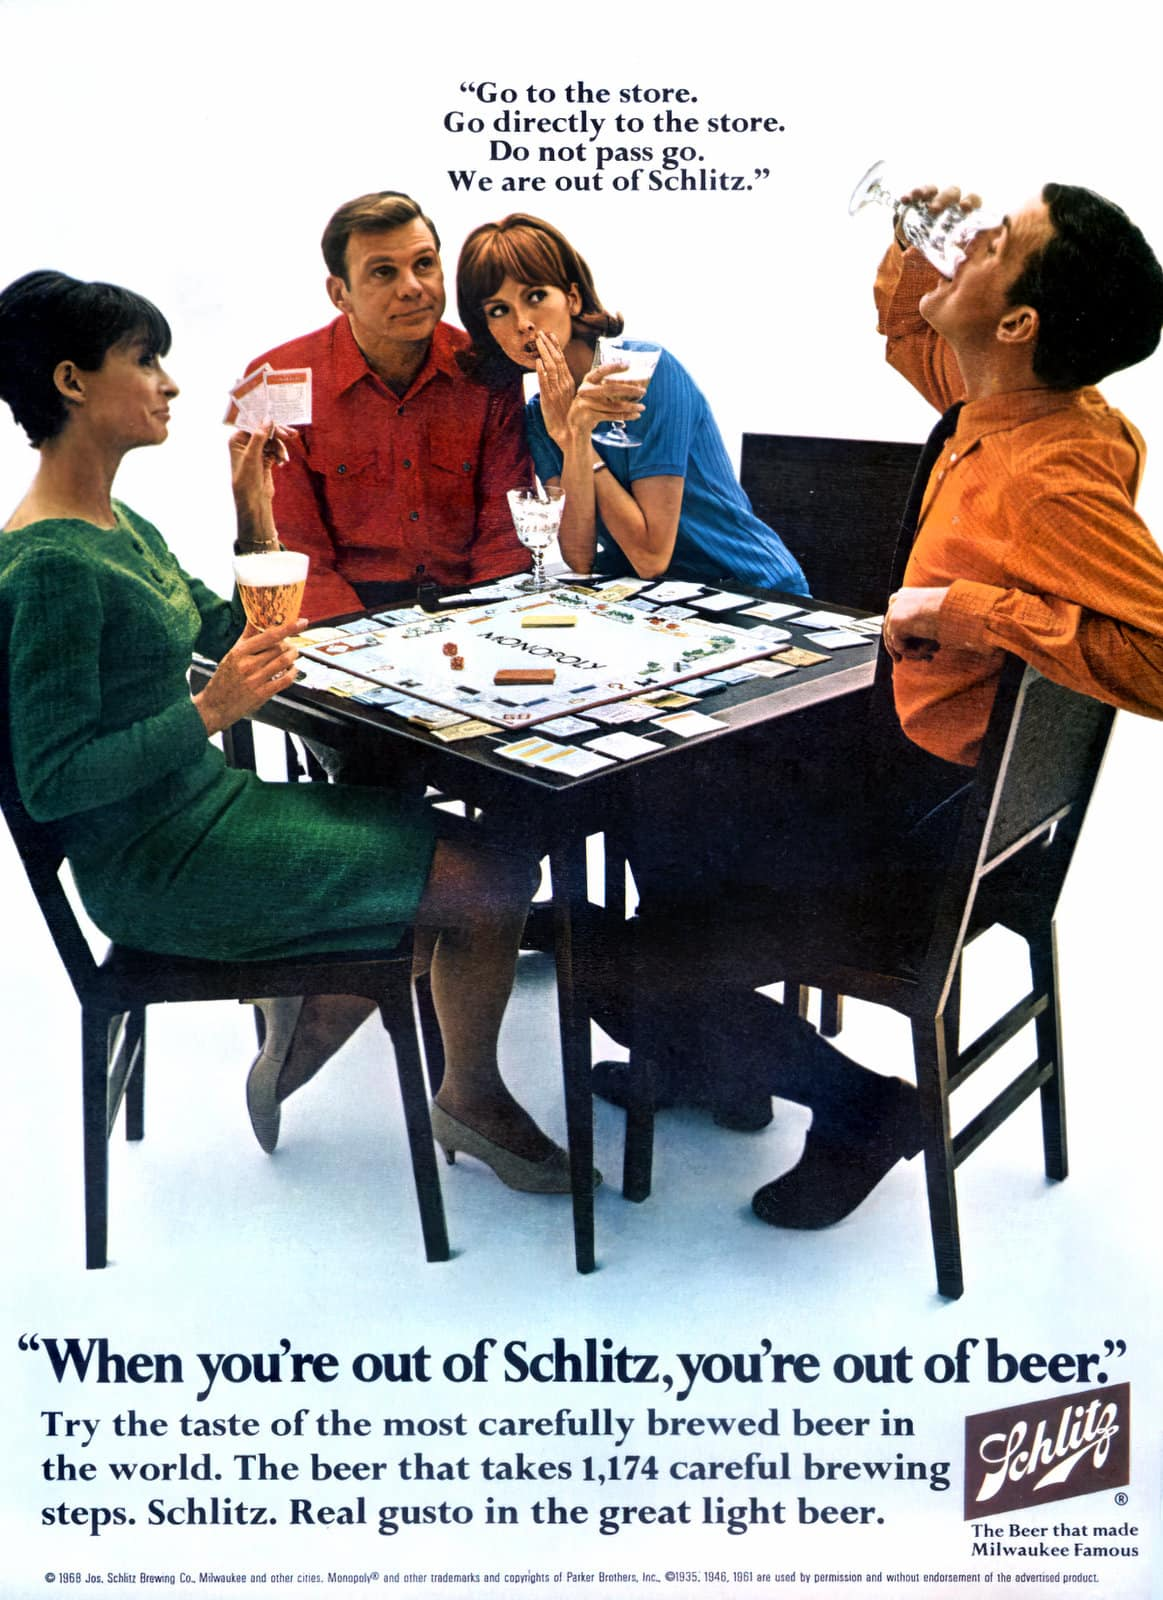 Out of Schlitz out of beer (1968)